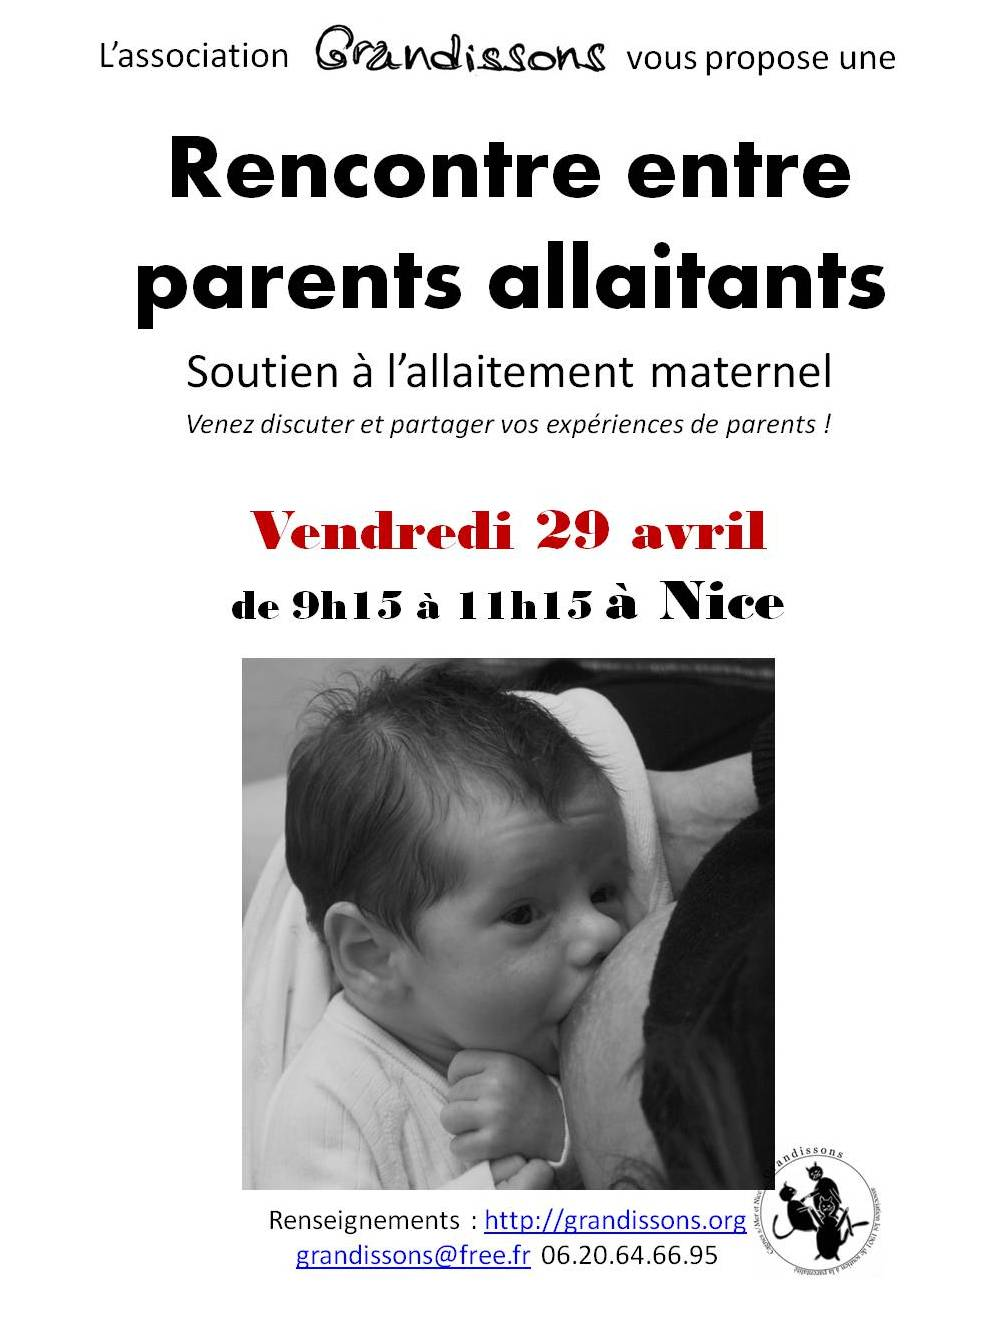 Rencontre entre parents divorces